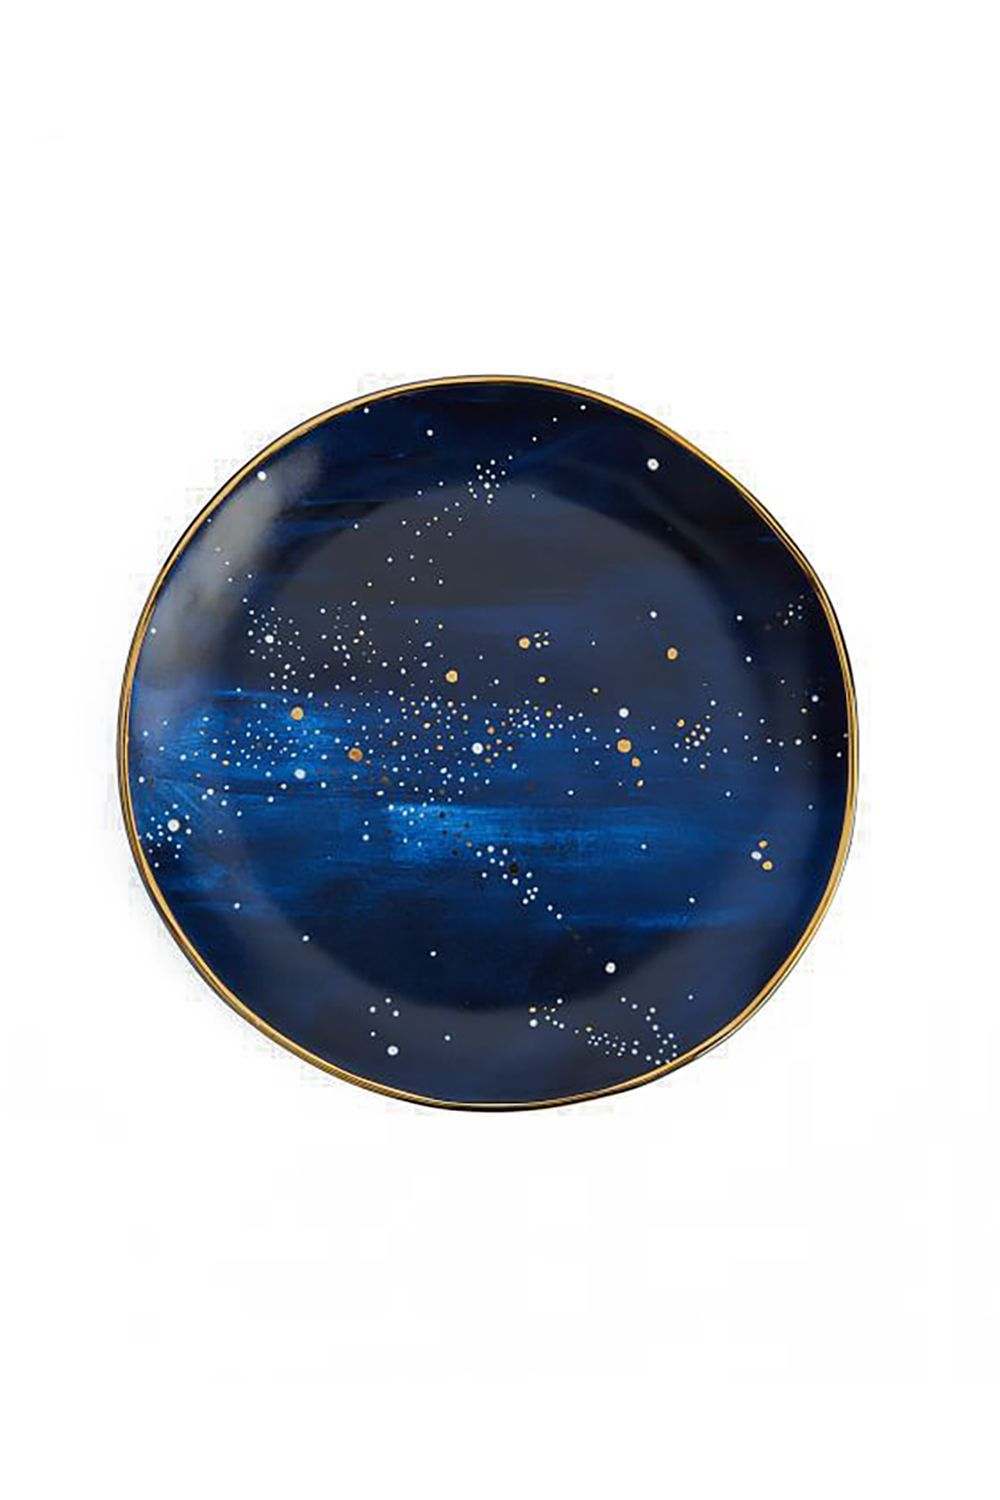 Constellation Salad Plate West Elm $9.00 SHOP IT No hostess will be able to resist this dreamy constellation salad plate.